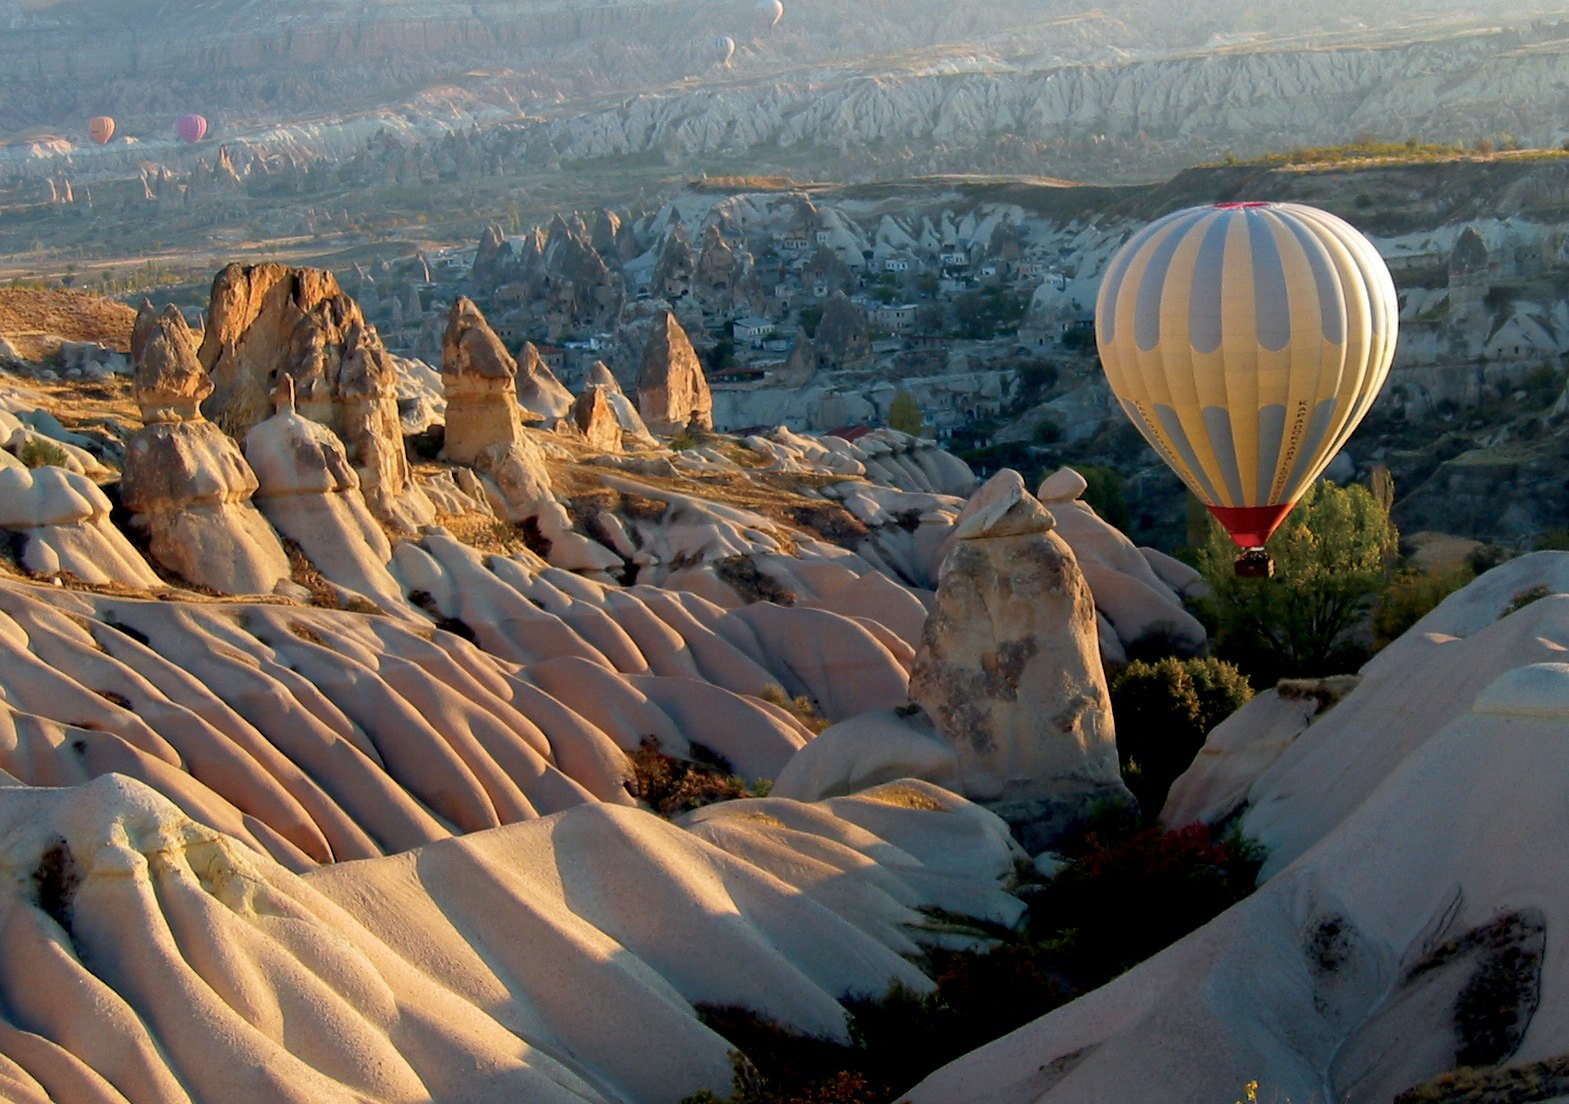 CAPPADOKIA 2 DAYS HALF BOARD